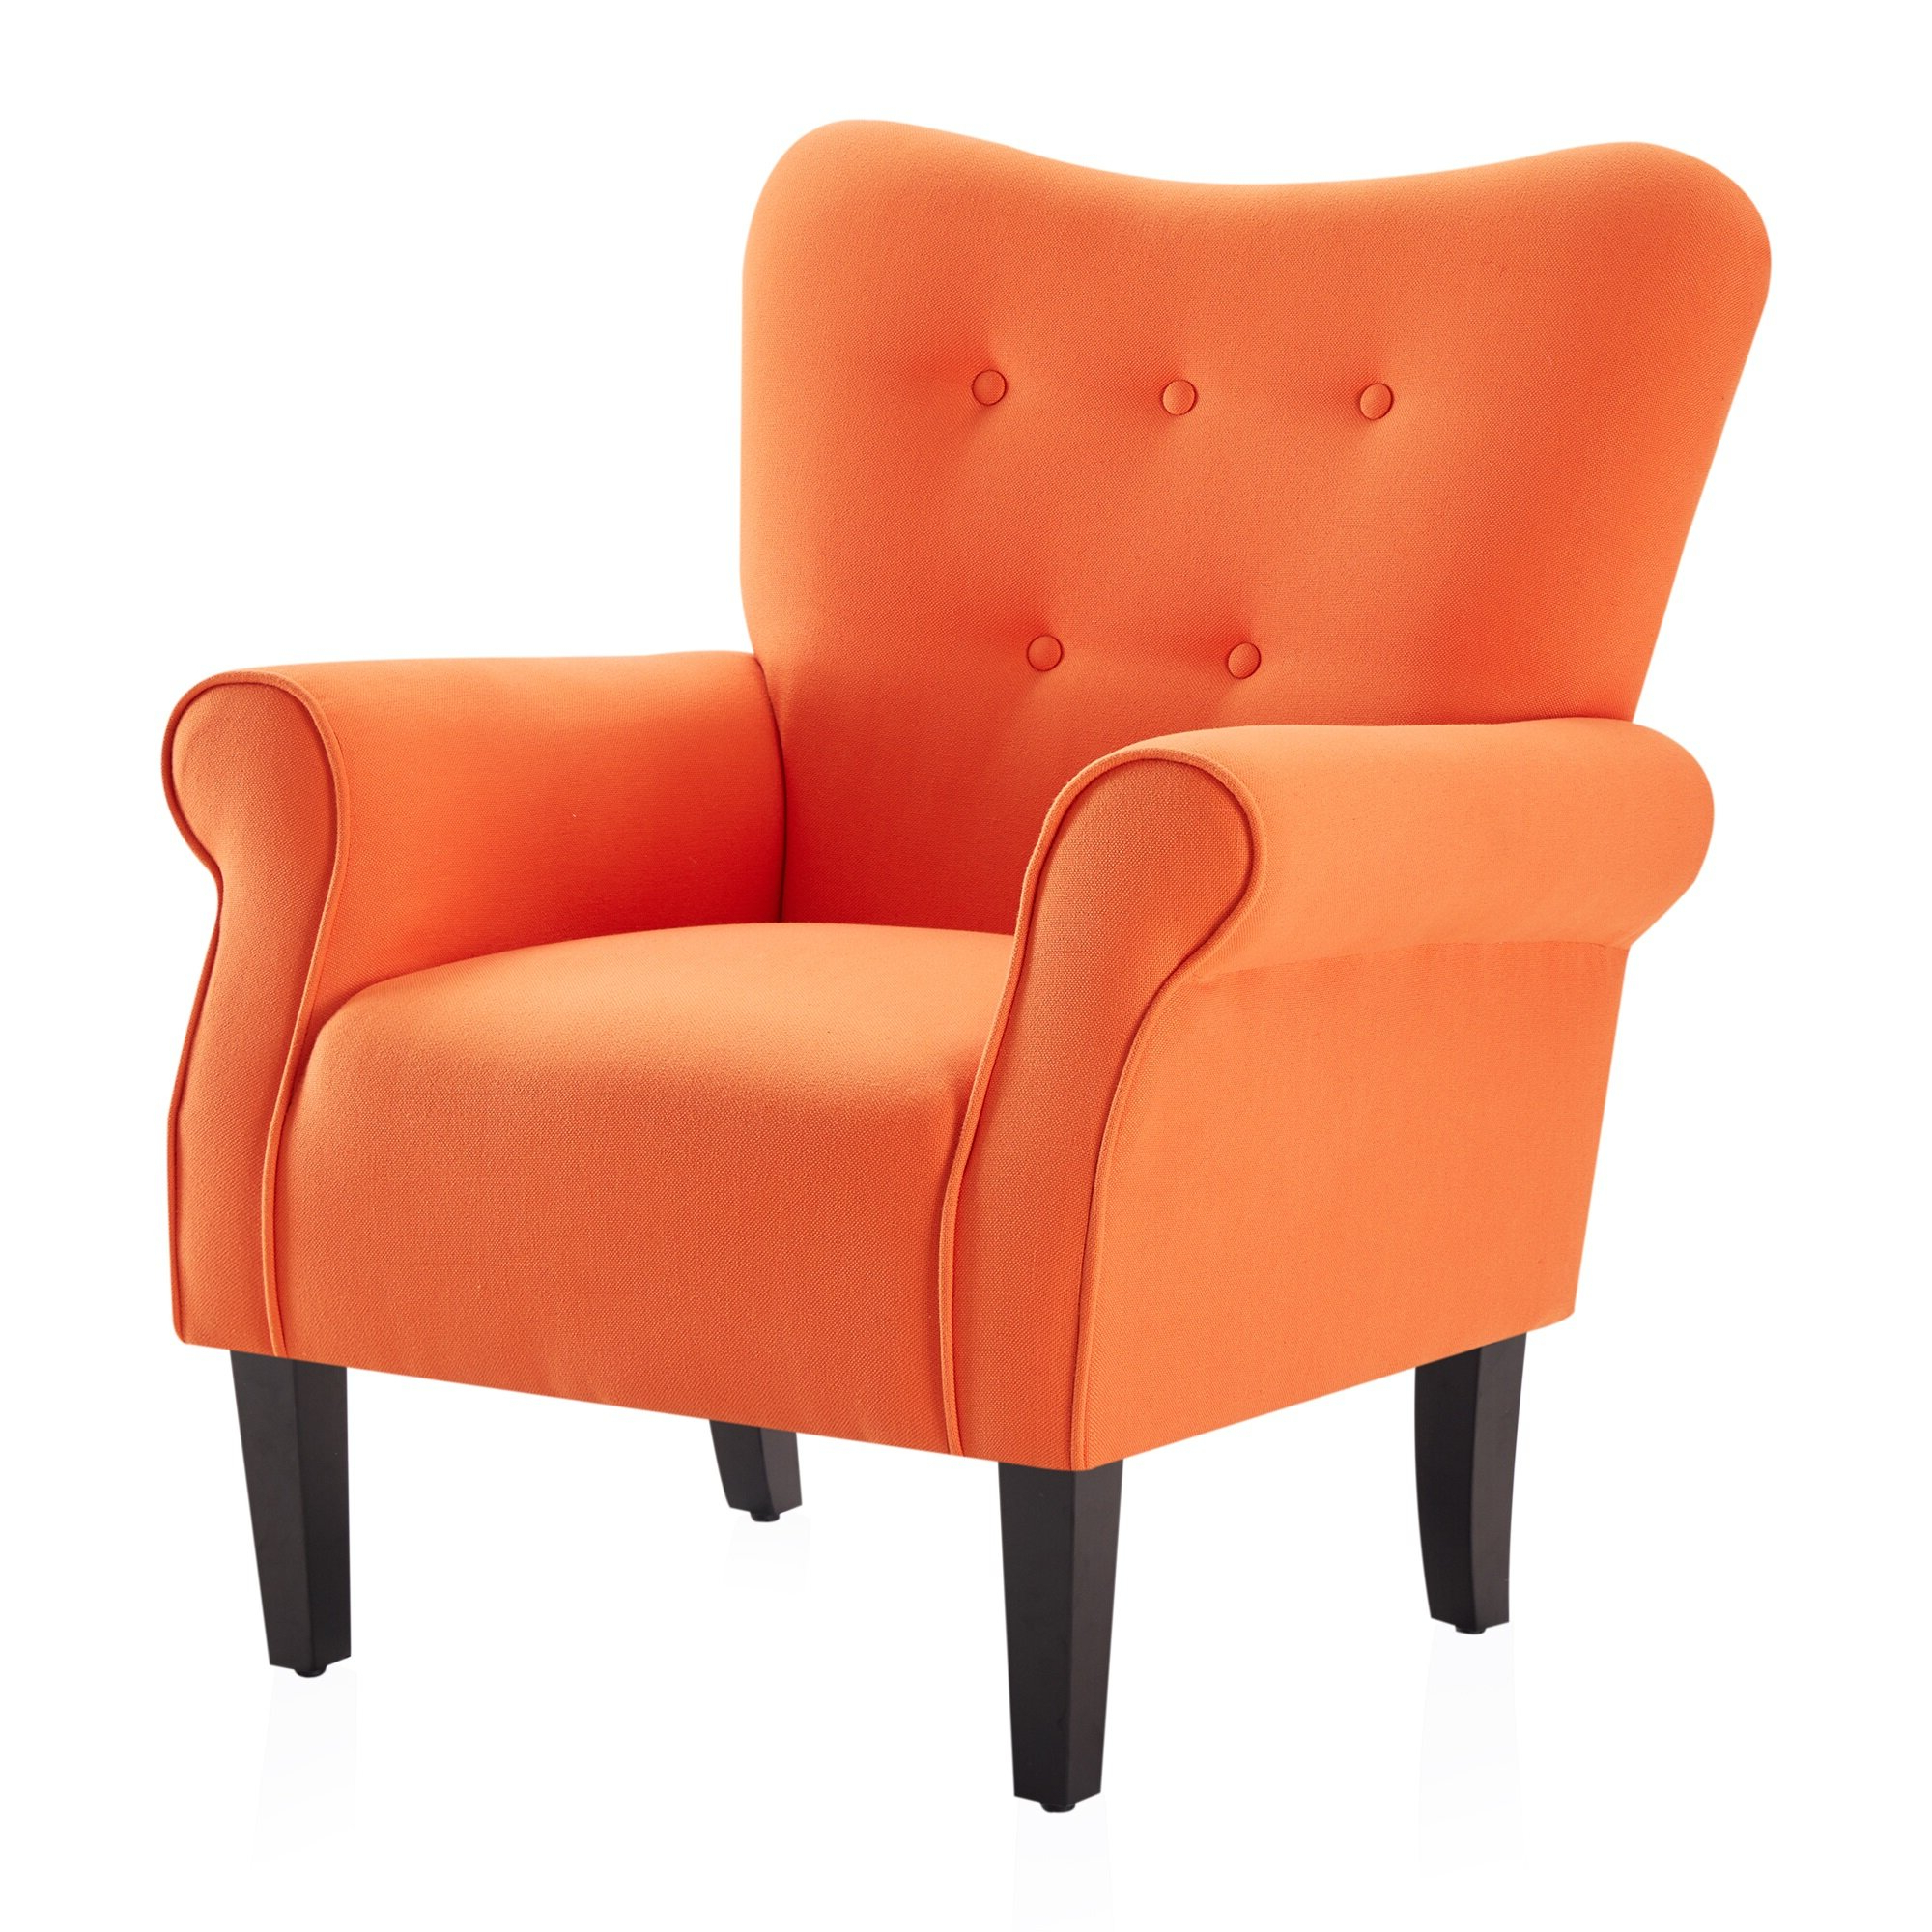 Wayfair Within Well Known Deer Trail Armchairs (View 16 of 20)